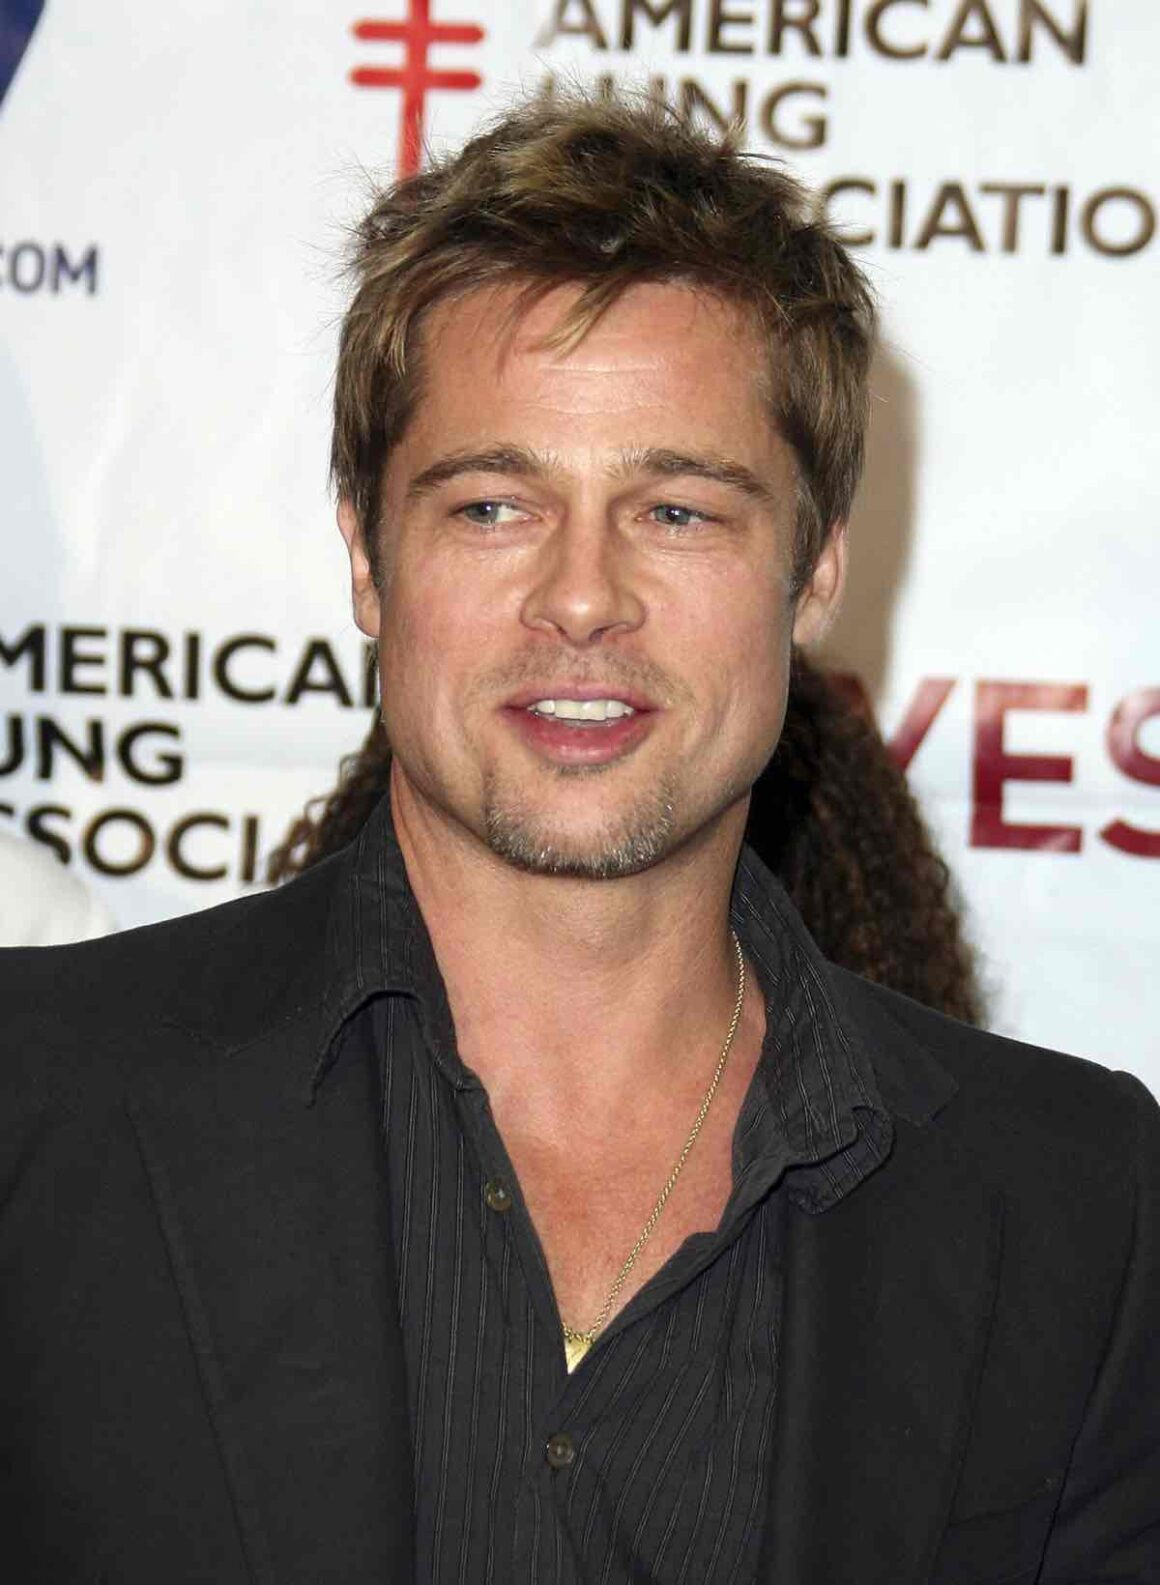 Brad Pitt Campaigns For Yes On CA Prop. 87